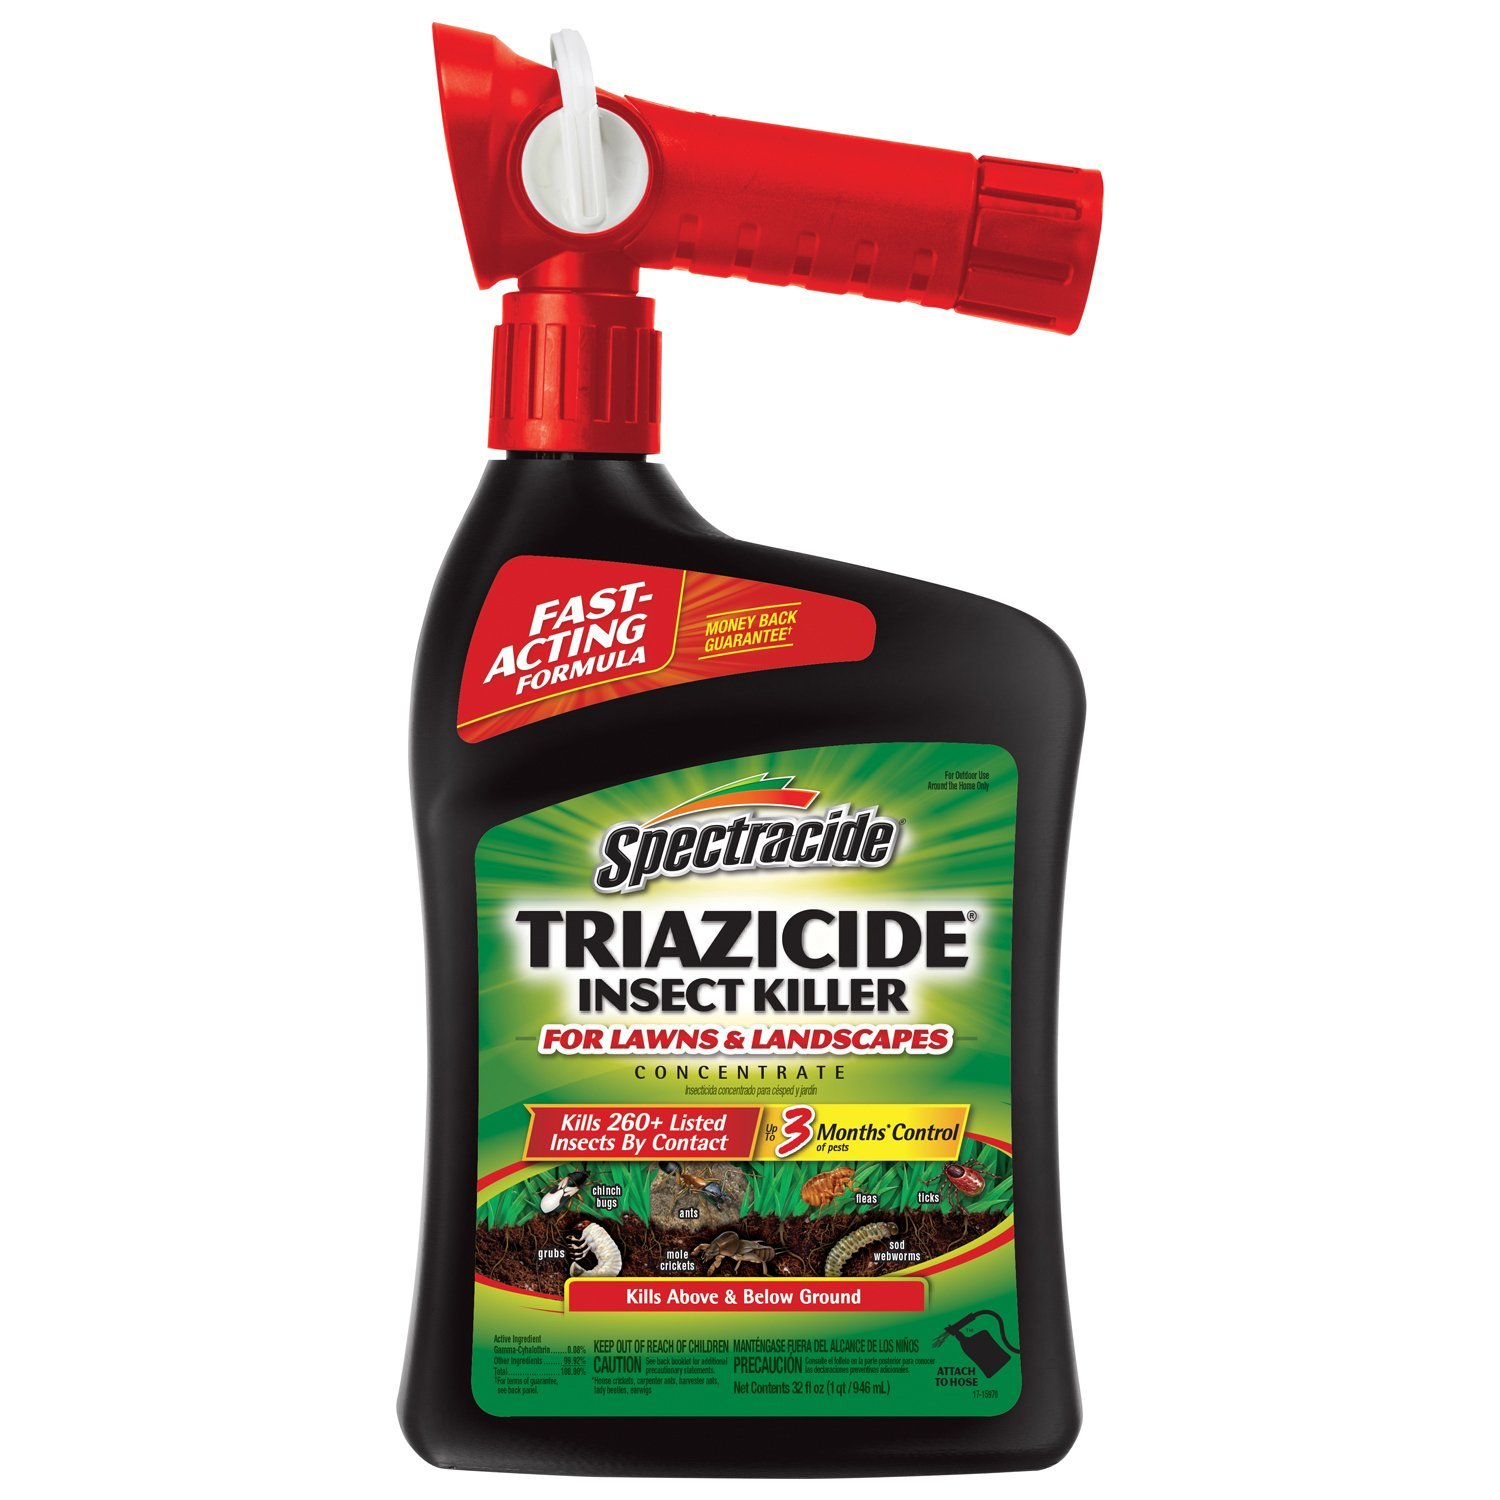 Spectracide Triazicide for Lawns Concentrate Ready-to-Spray, 32 oz